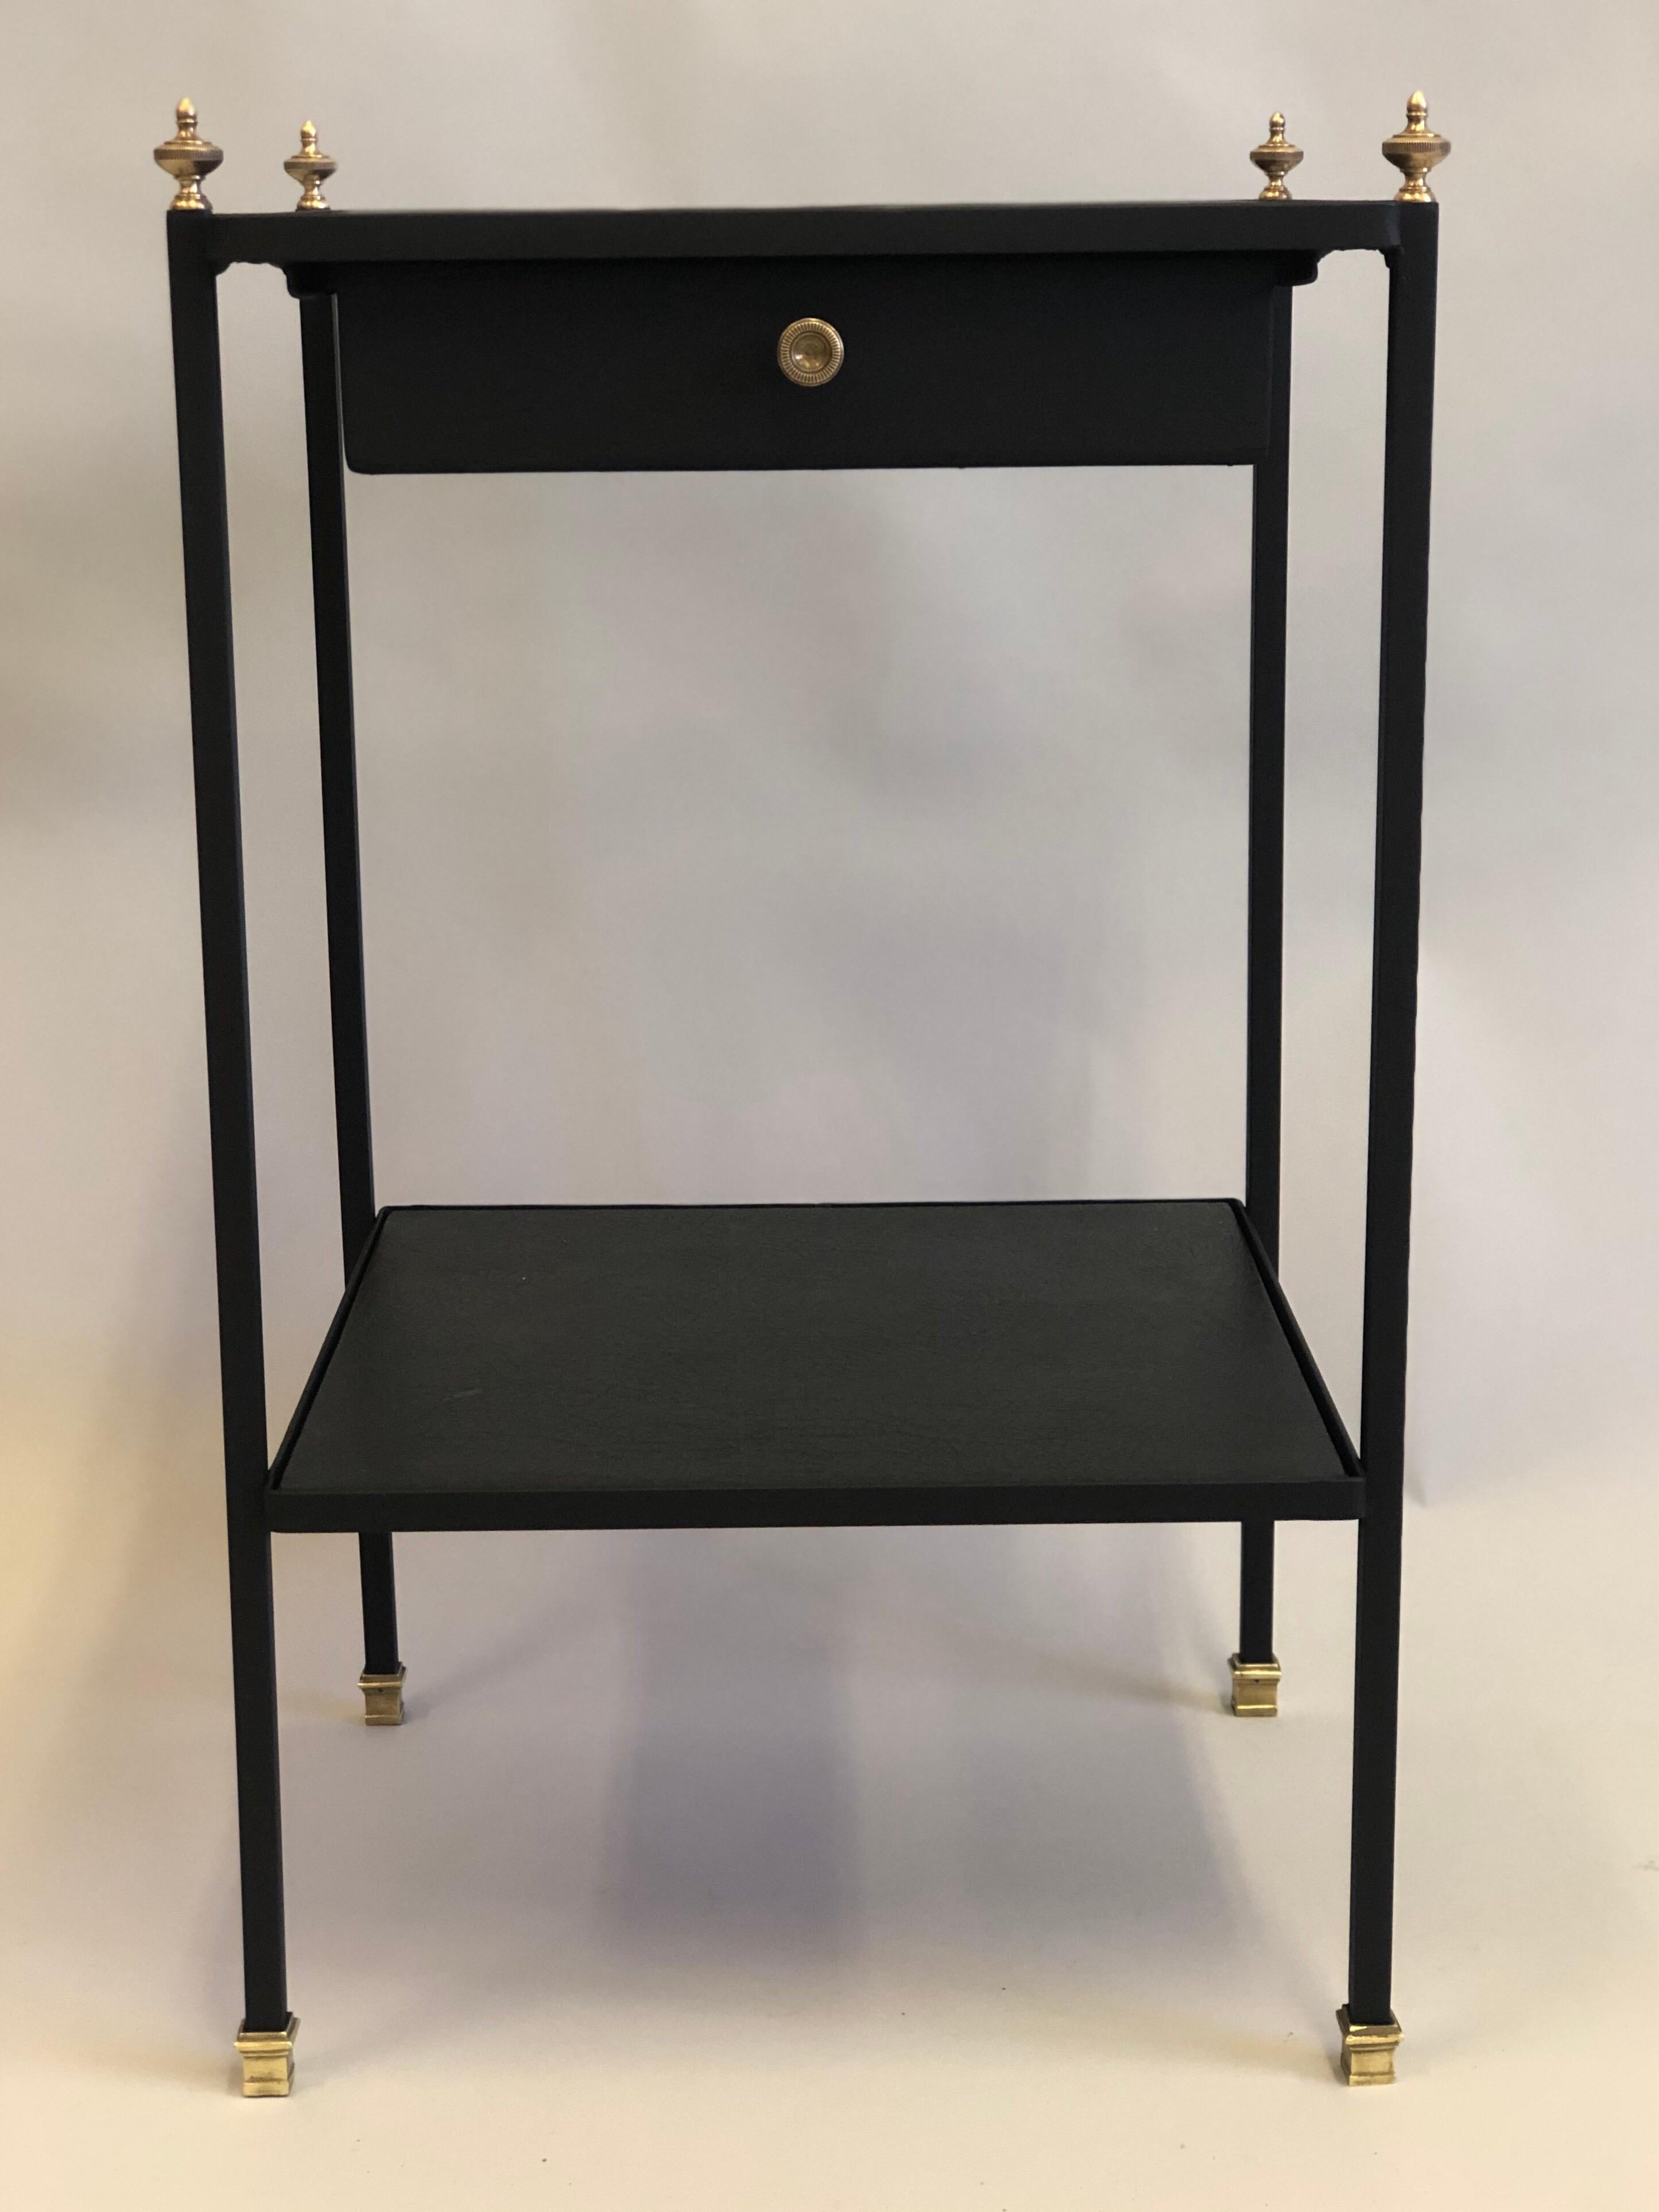 French Modern Neoclassical Iron Leather Side Table Nightstand By Jacques Adnet